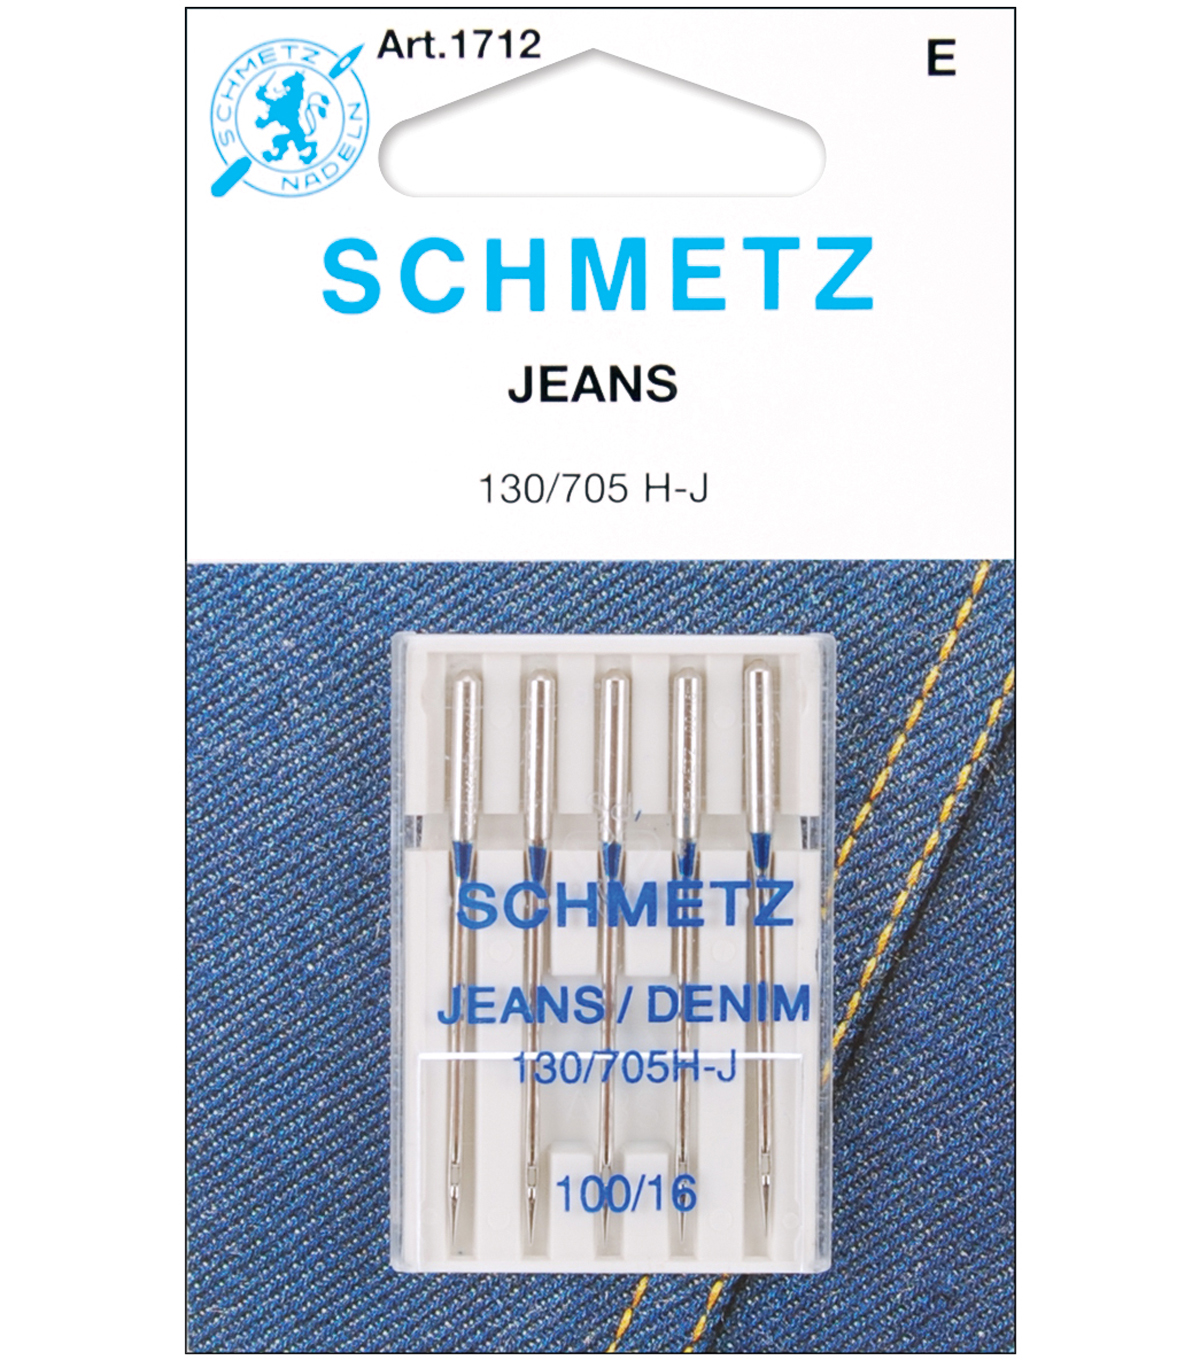 Schmetz Universal Point Machine Needles 5pcs Size 100/16, Size 16/100